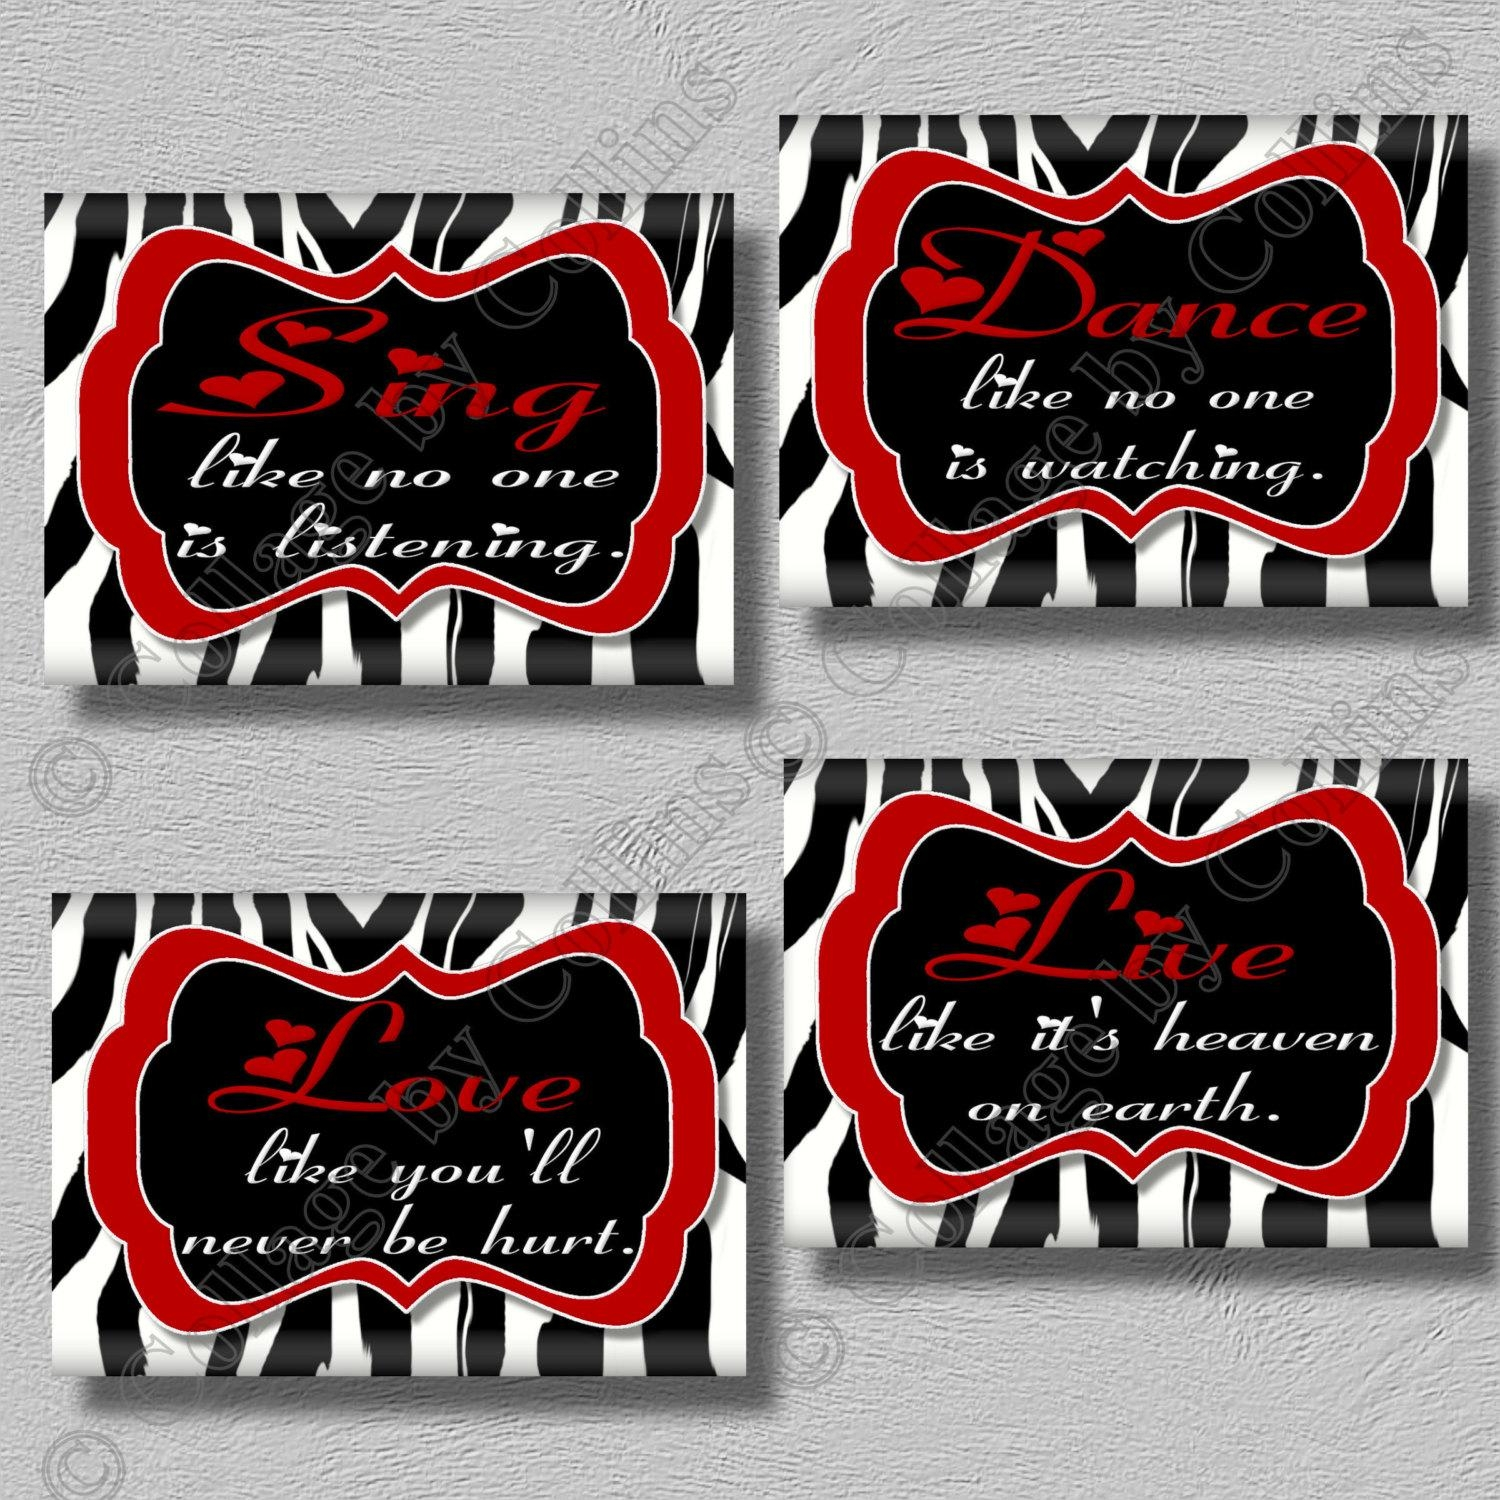 Zebra Print And Red Living Room Decor, Red Zebra Trend Home Ideas Pertaining To Red Bathroom Wall Art (Image 20 of 20)